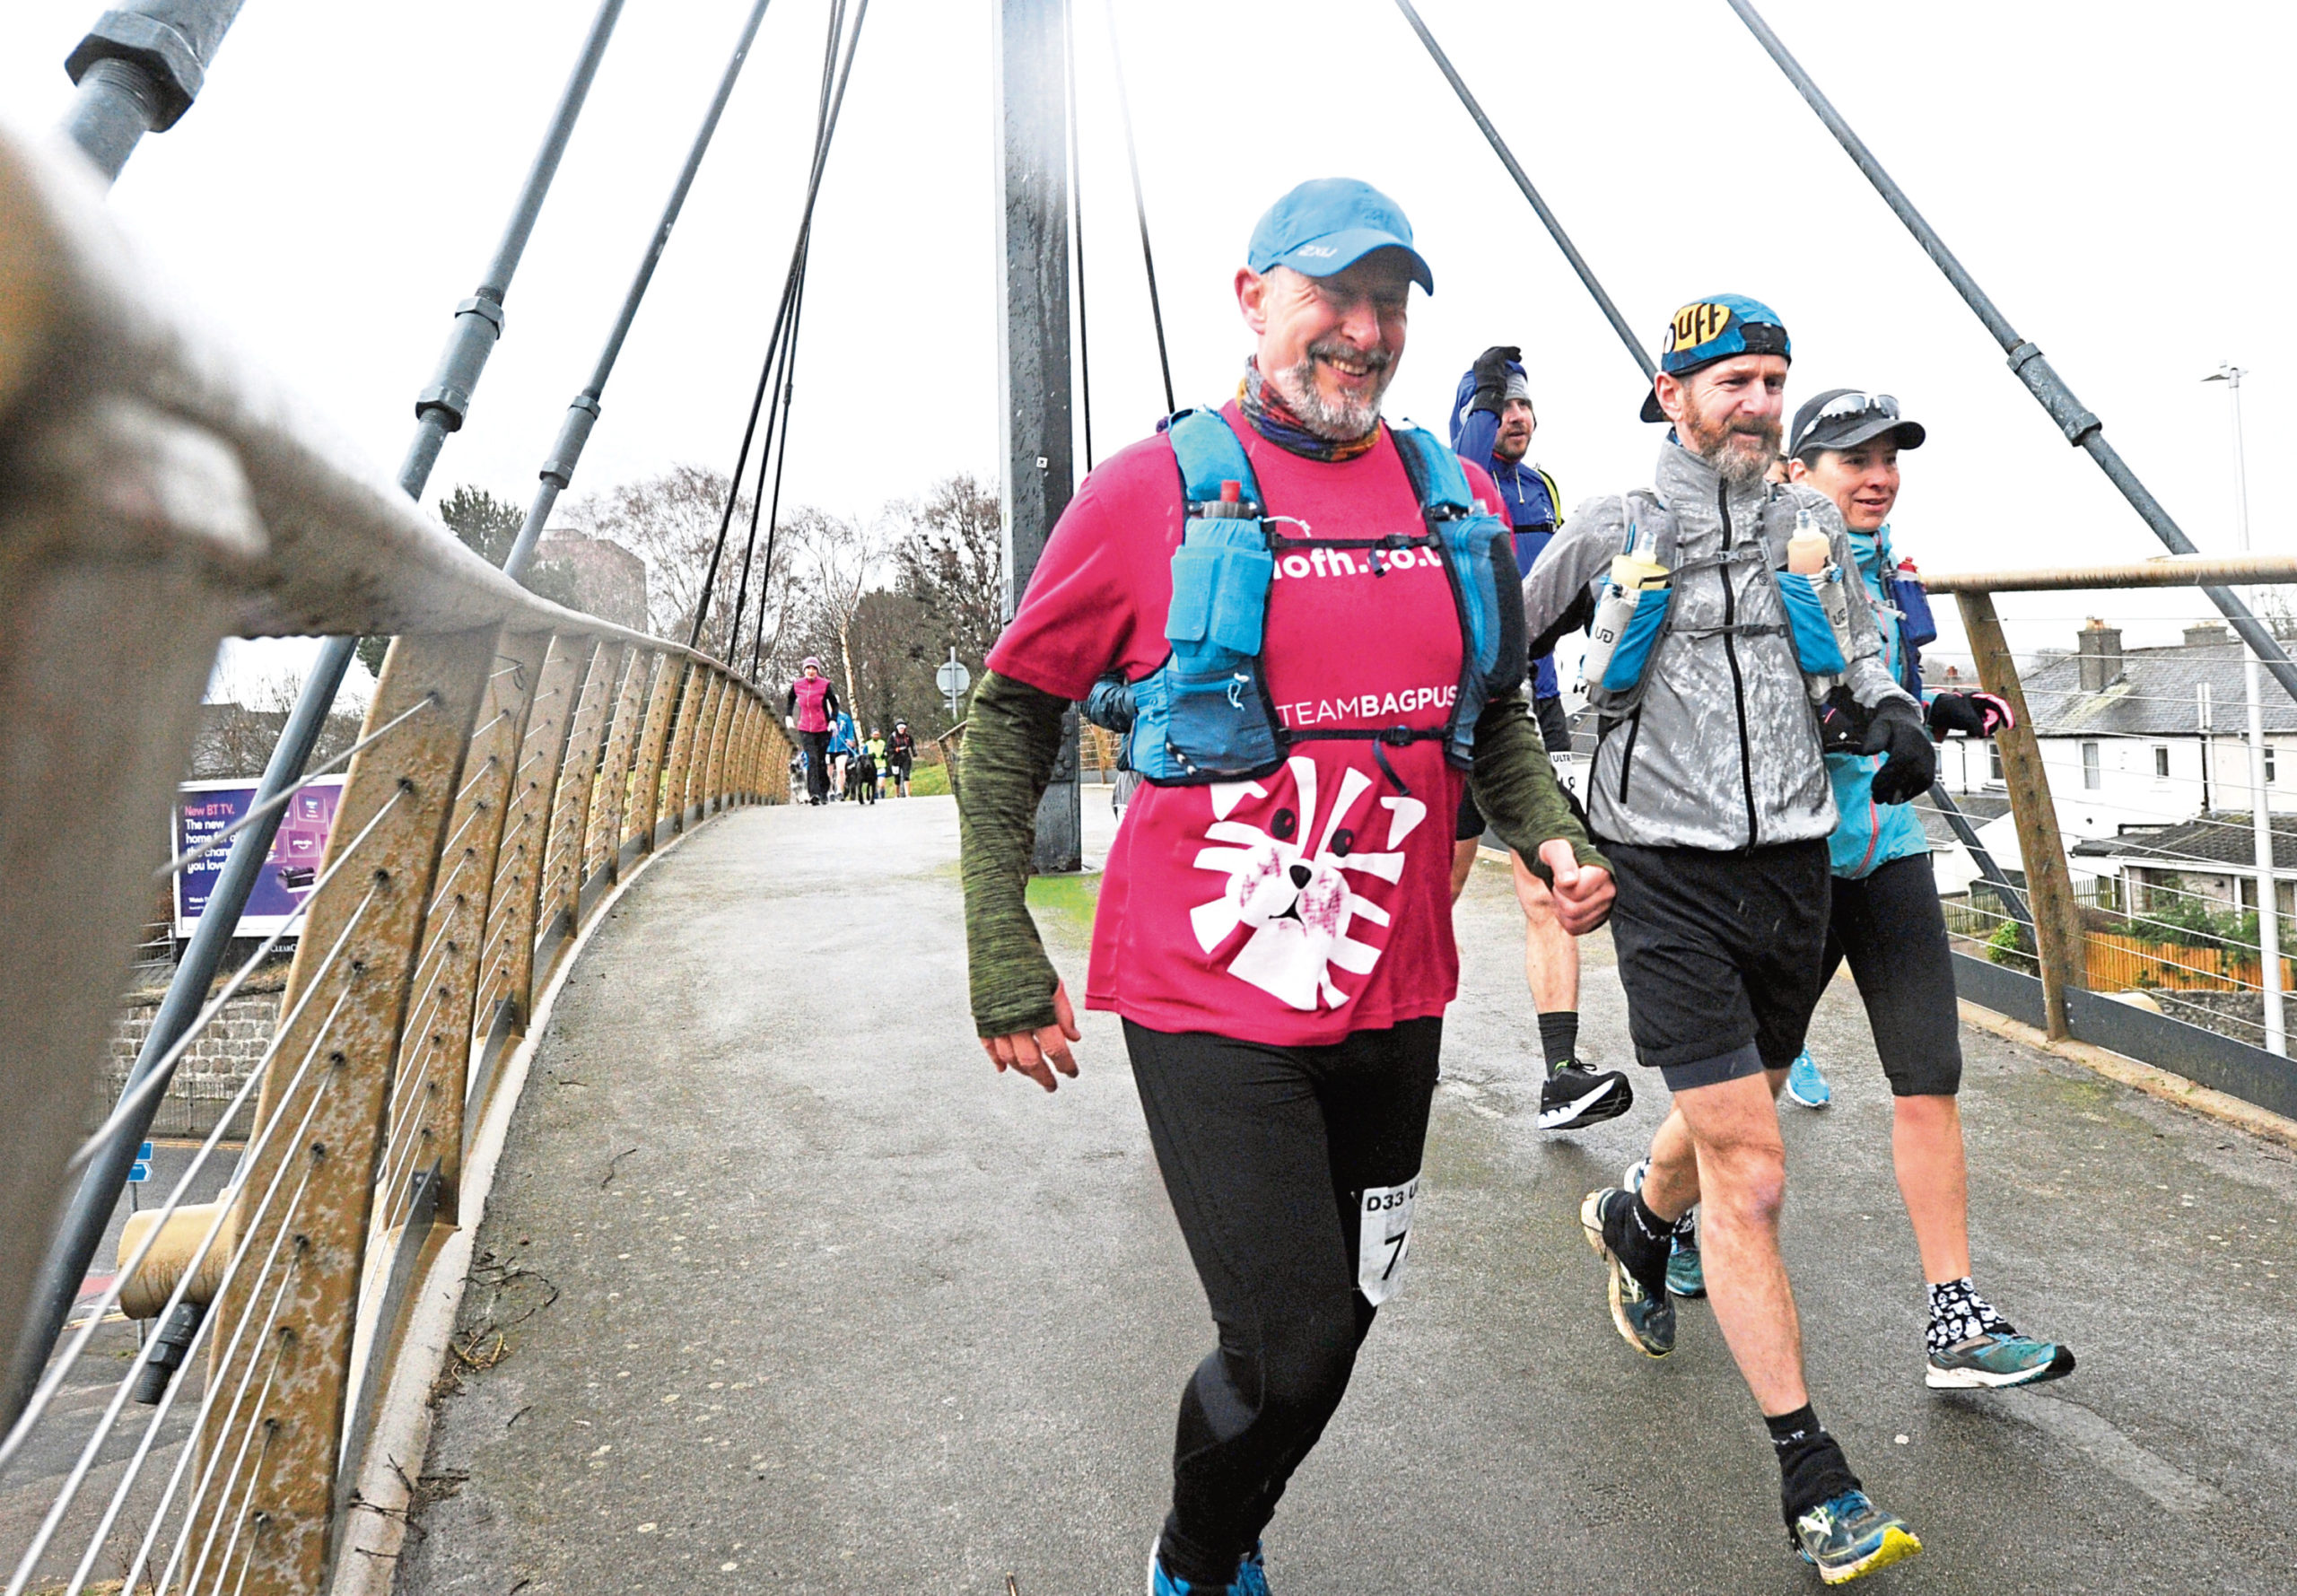 This year's Dee 33 mile ultra-race started at the Duthie Park. Runners go over the Holburn footbridge near the start of the race as the rain falls. Picture by COLIN RENNIE